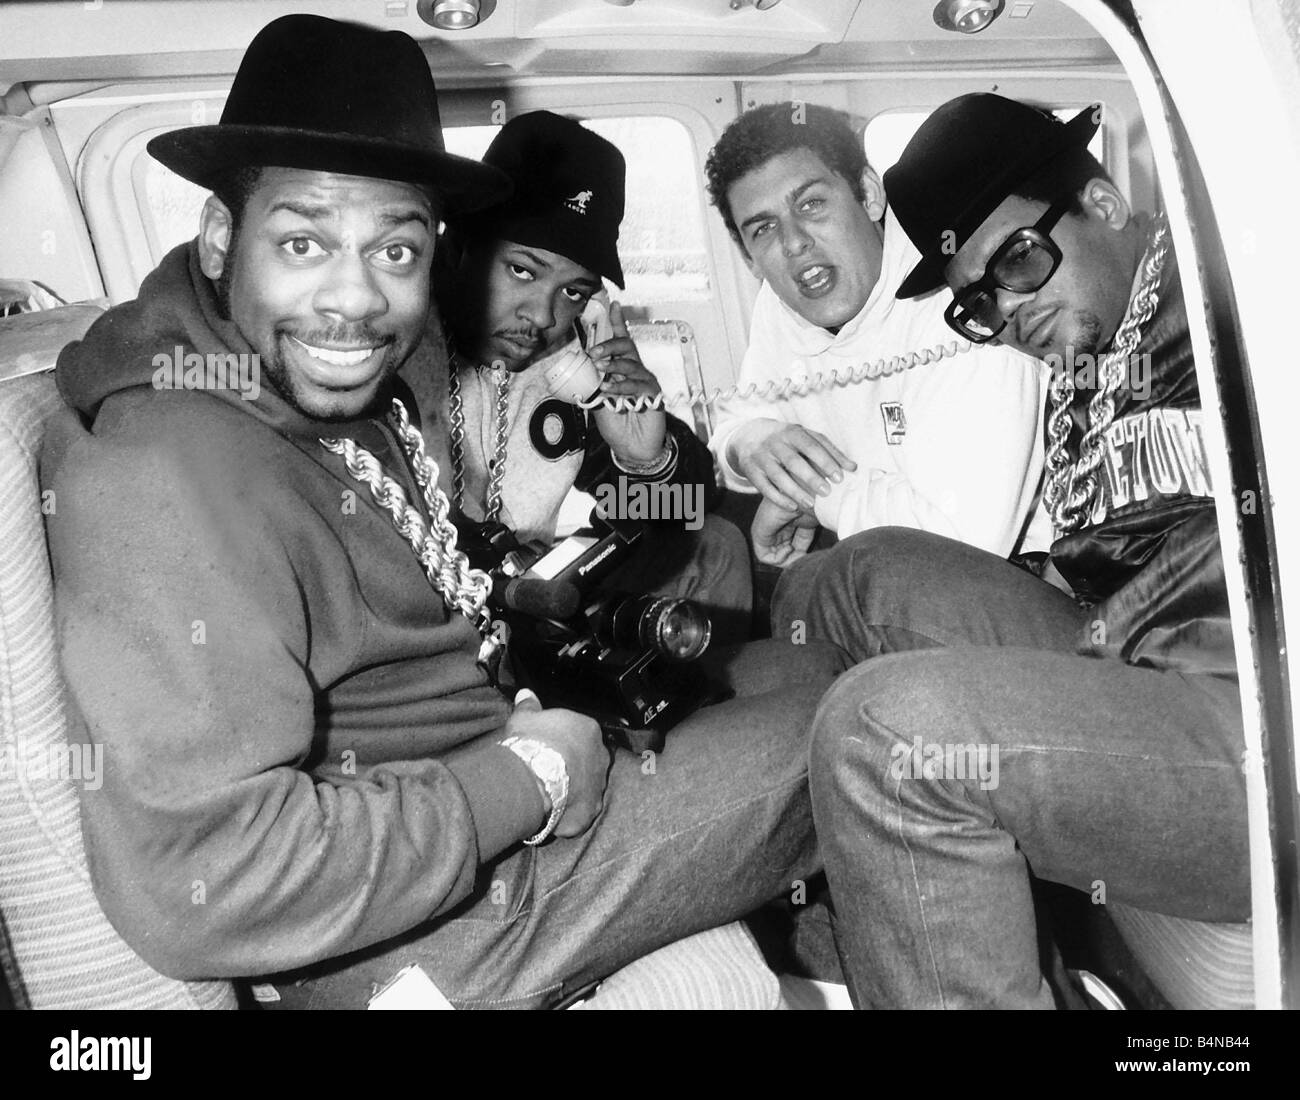 Run DMC American pop group rap inside helicopter 1986 - Stock Image